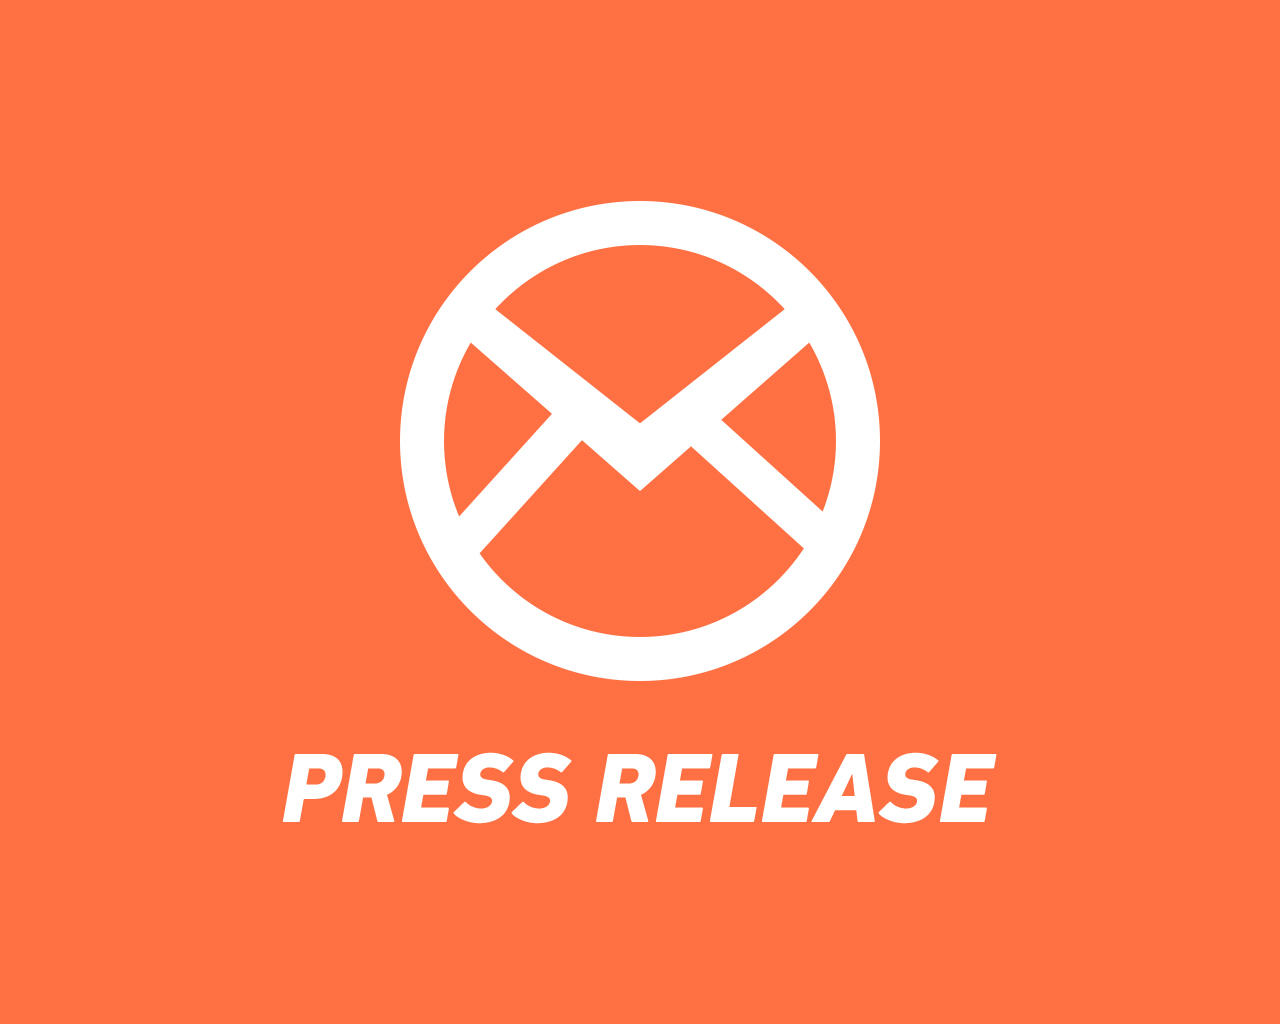 Press release writing service for musicians